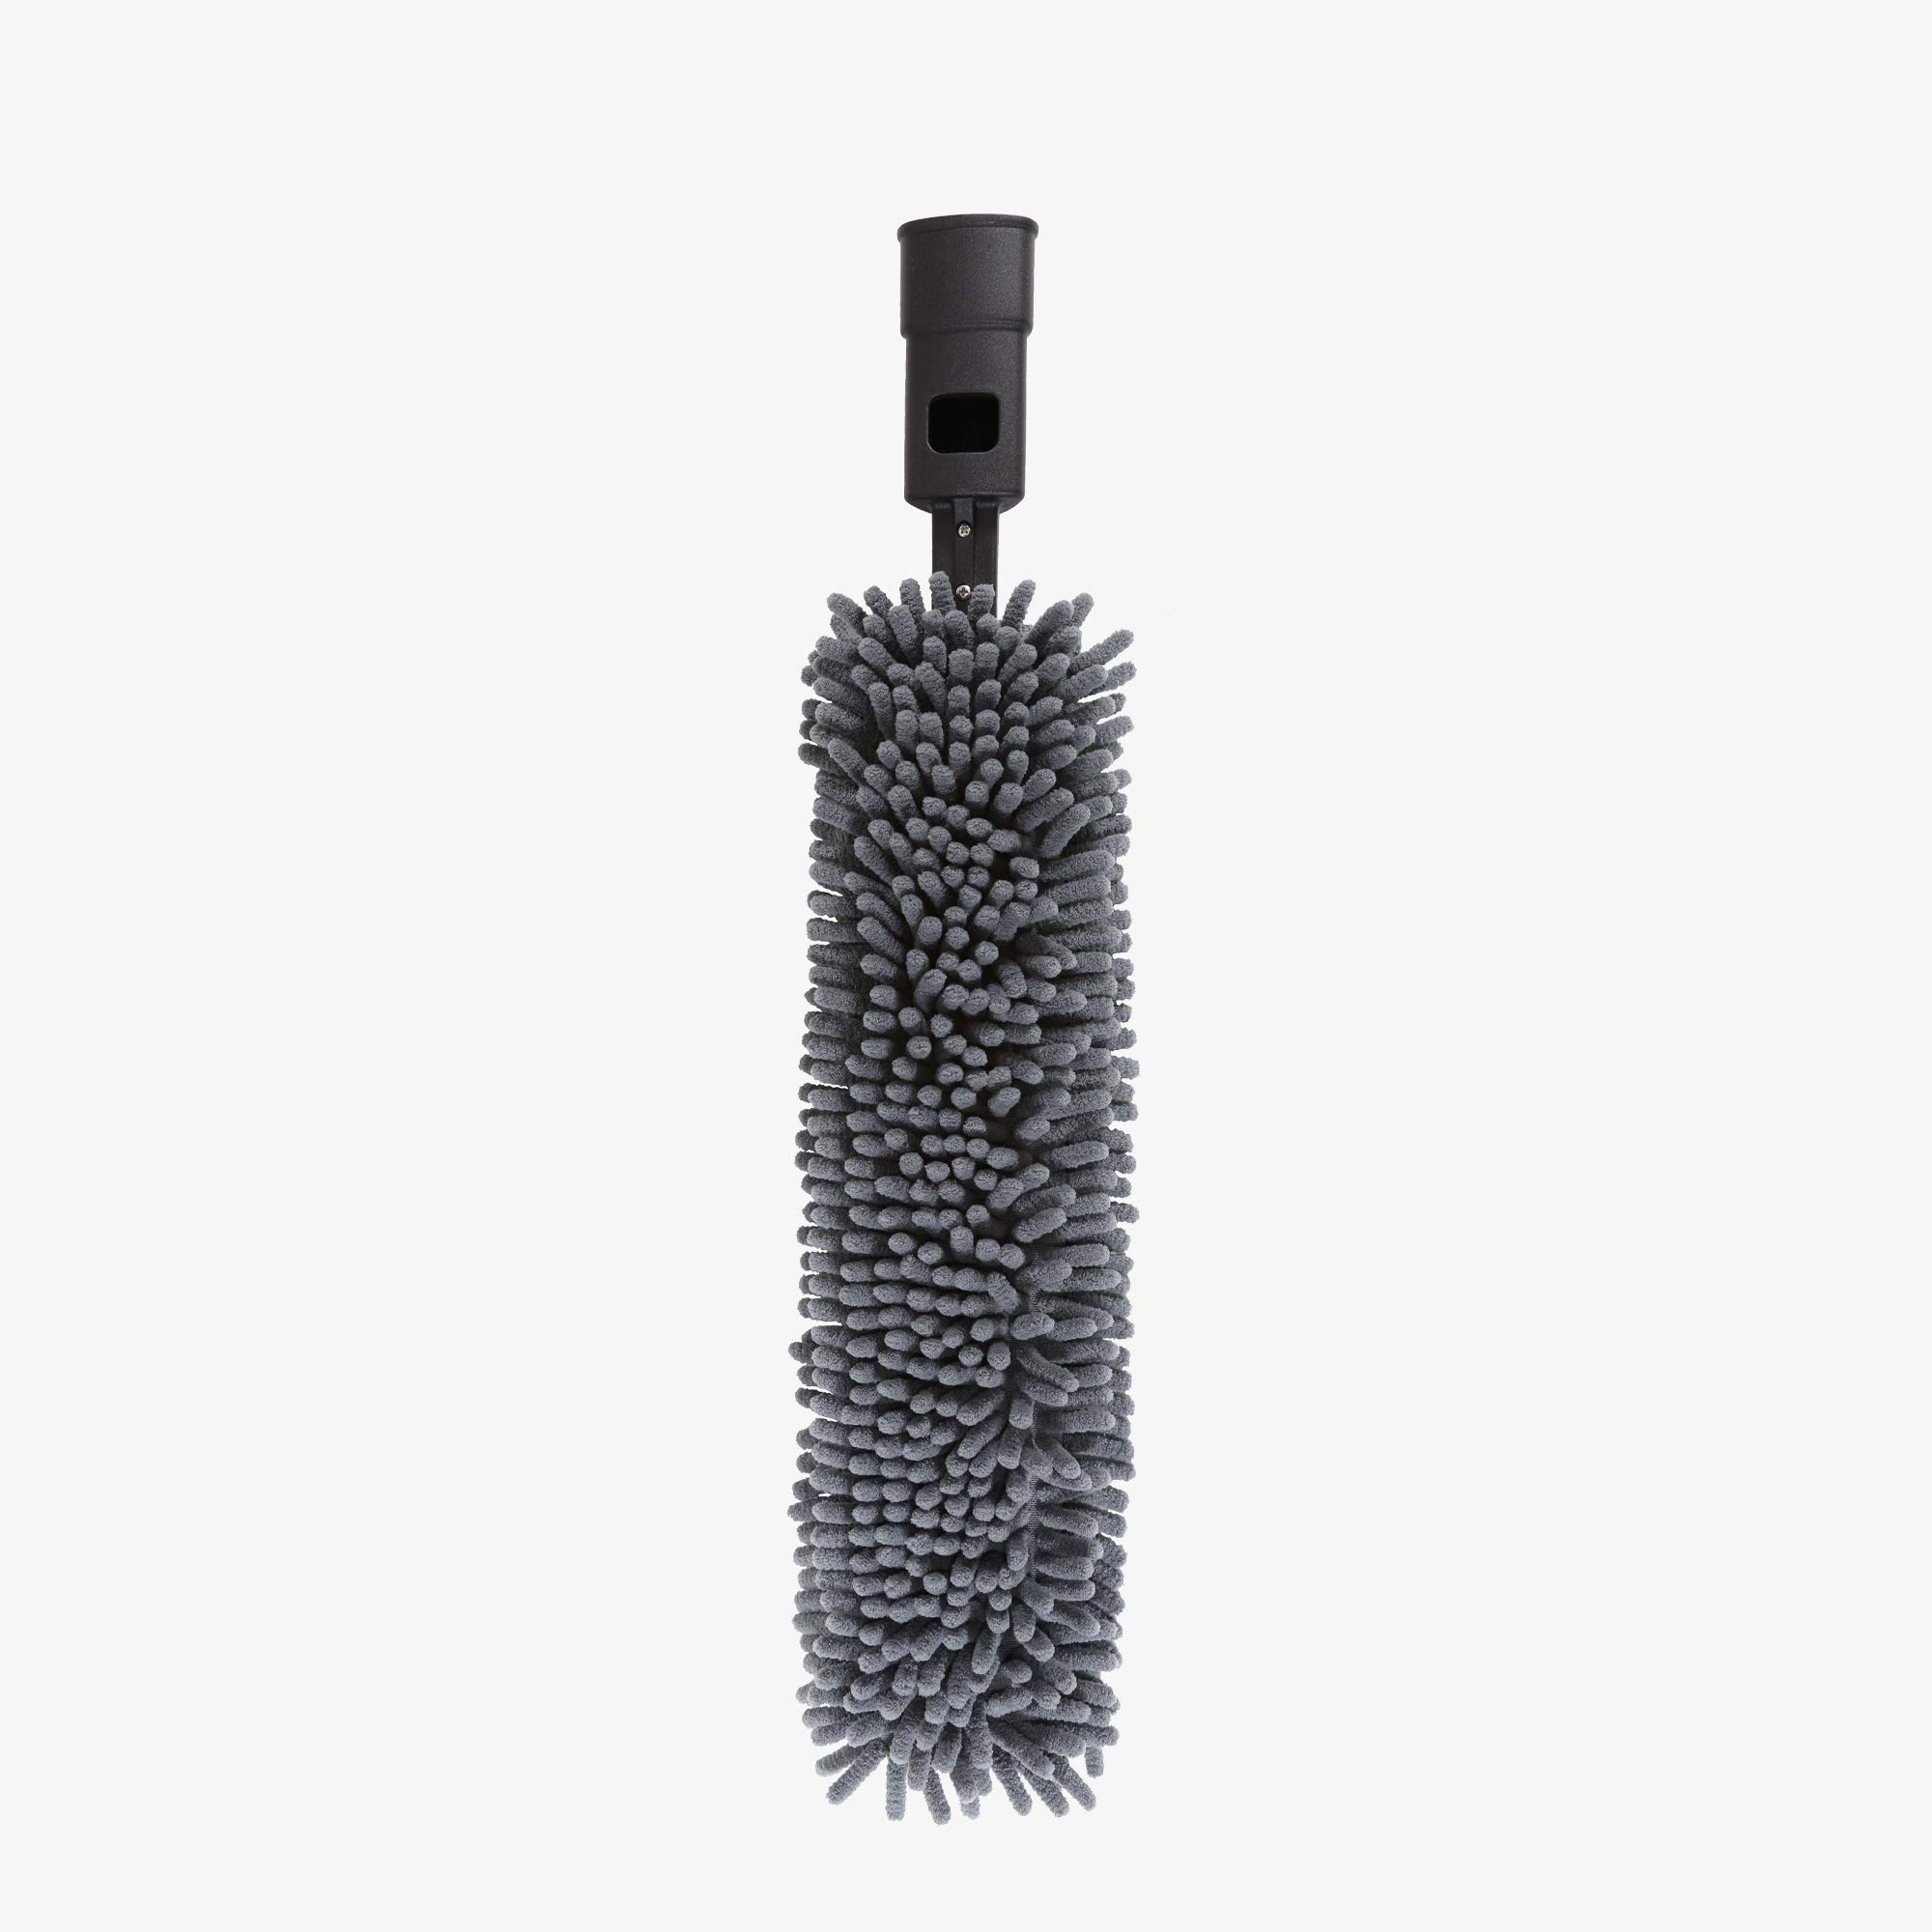 SWOPT Microfiber Flexible Duster Head – Washable Cleaning Pad for Hard to Reach or Tall Areas – Interchangeable with Other SWOPT Products for More Efficient Cleaning and Storage, Head Only, Handle Sold Separately, Refill Included, 5400C6